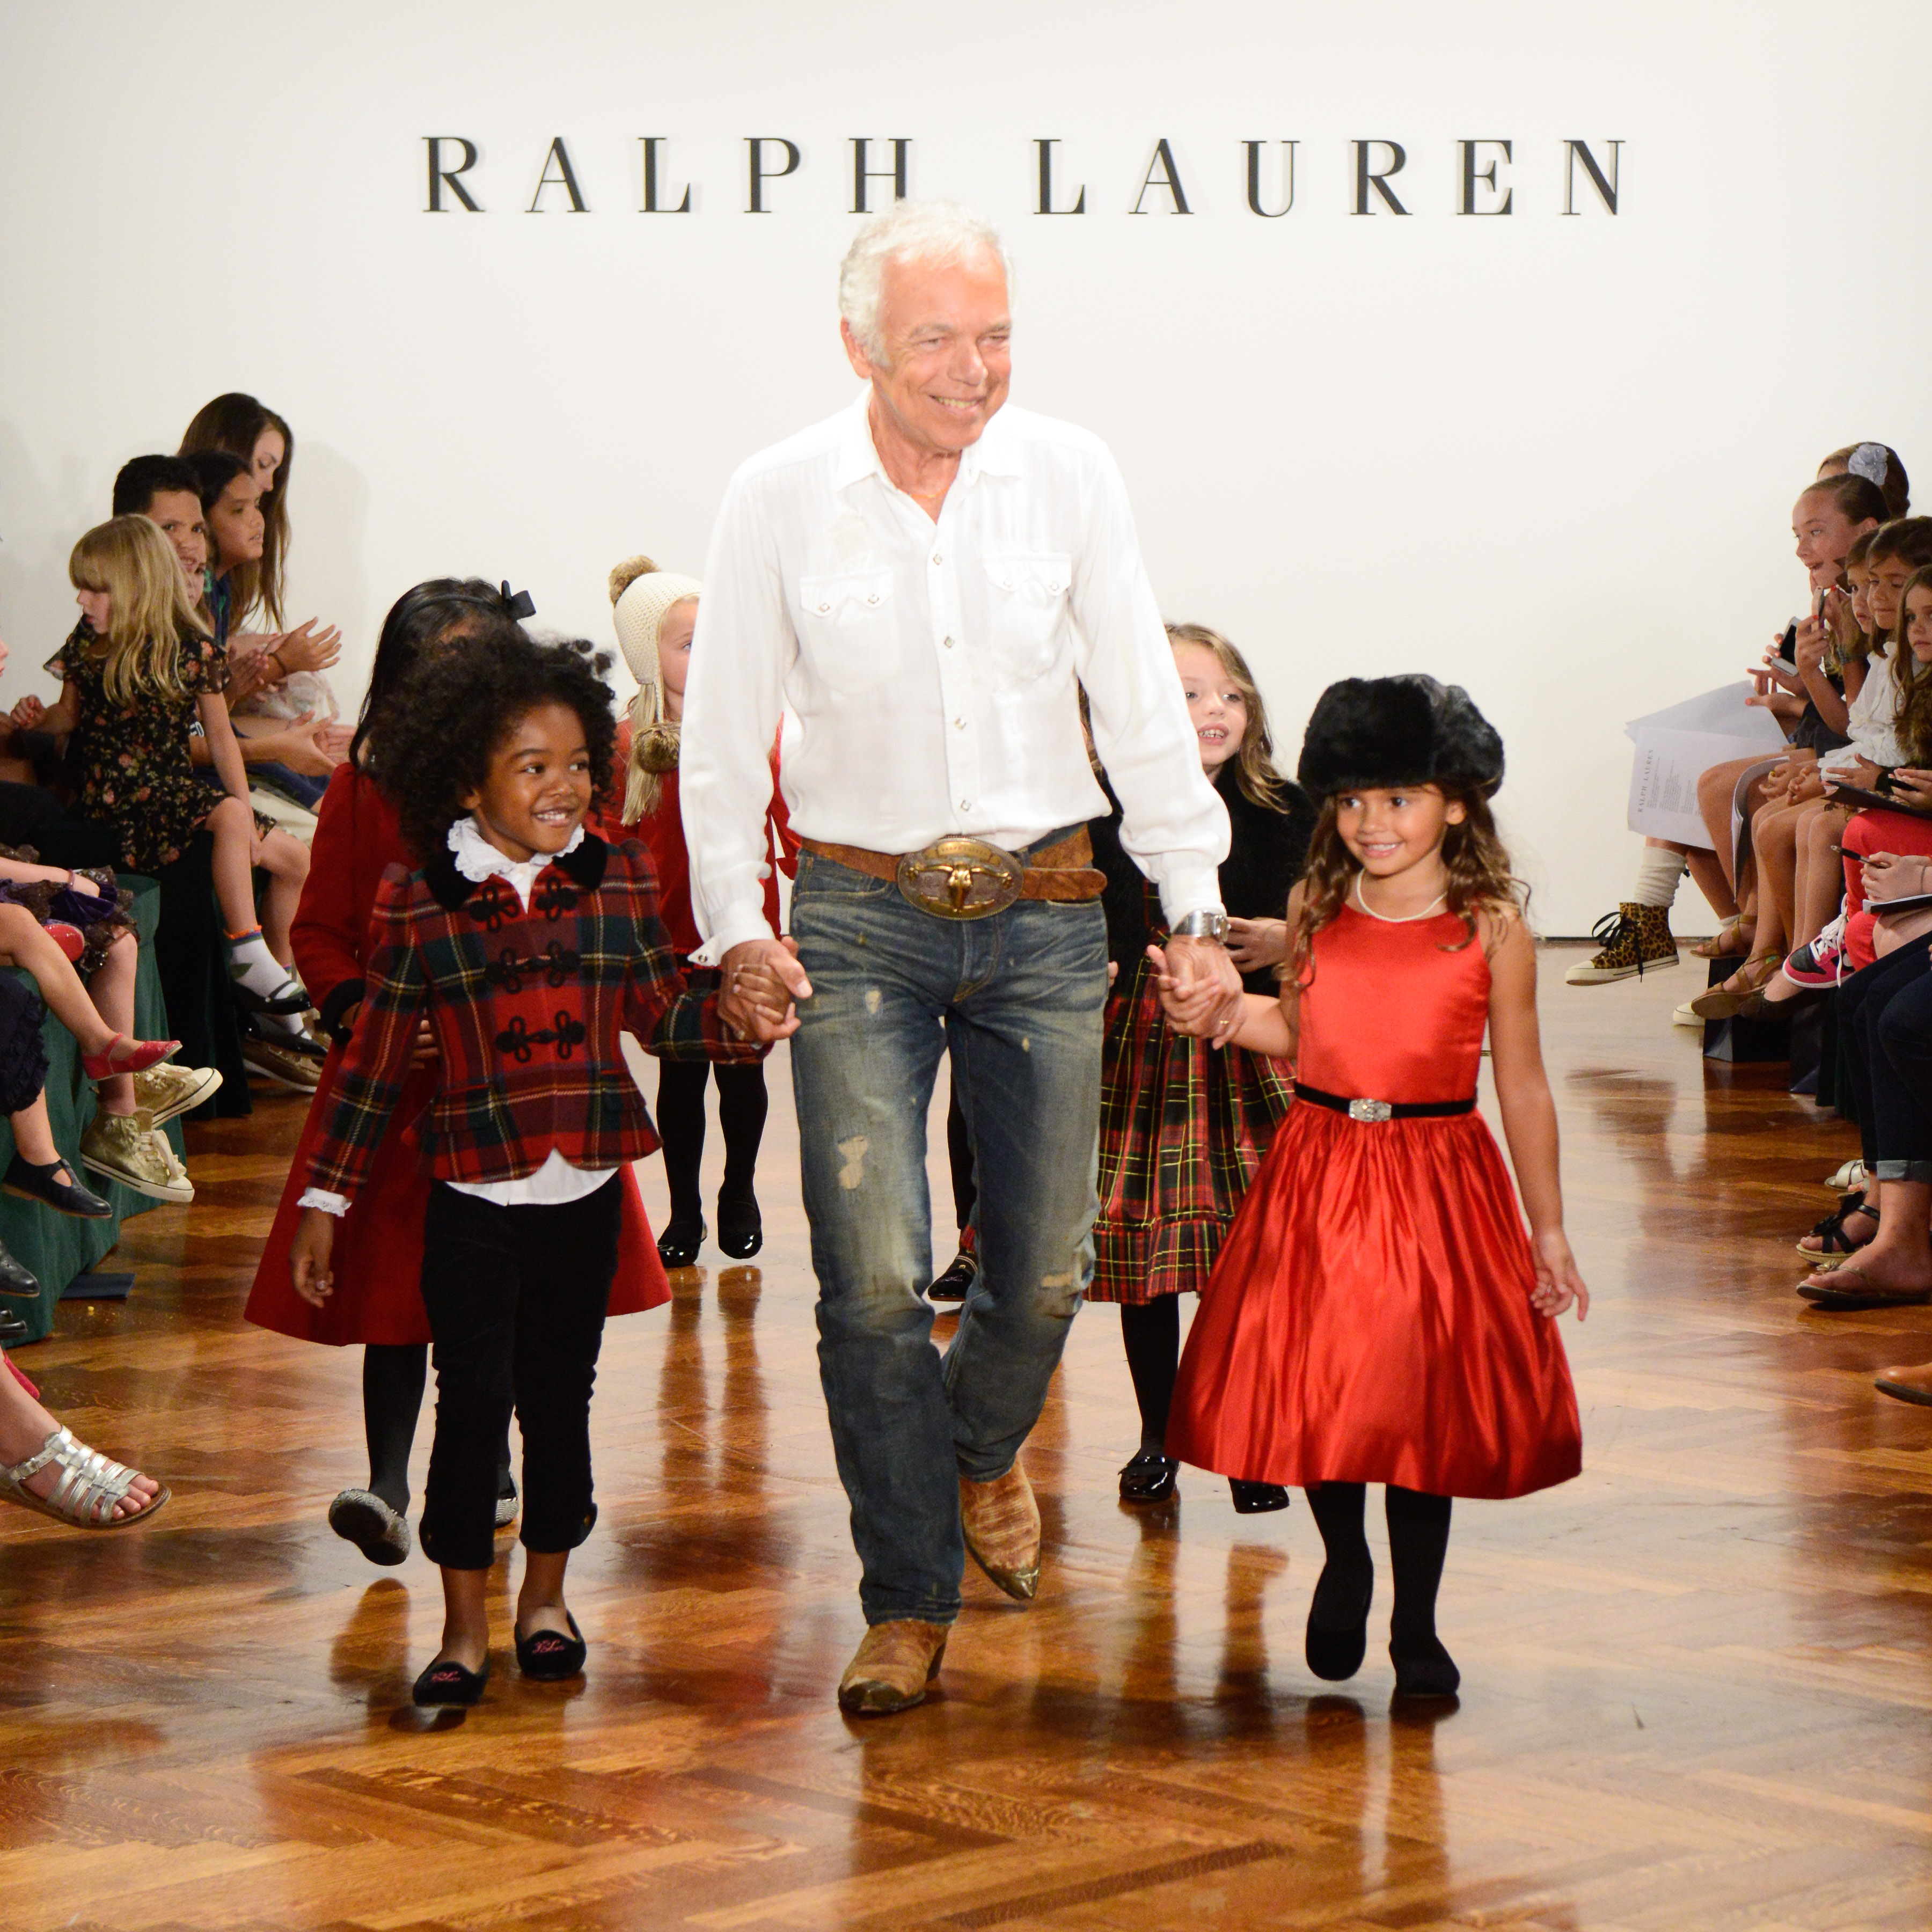 And also Ralph Lauren is American Designer. click to close